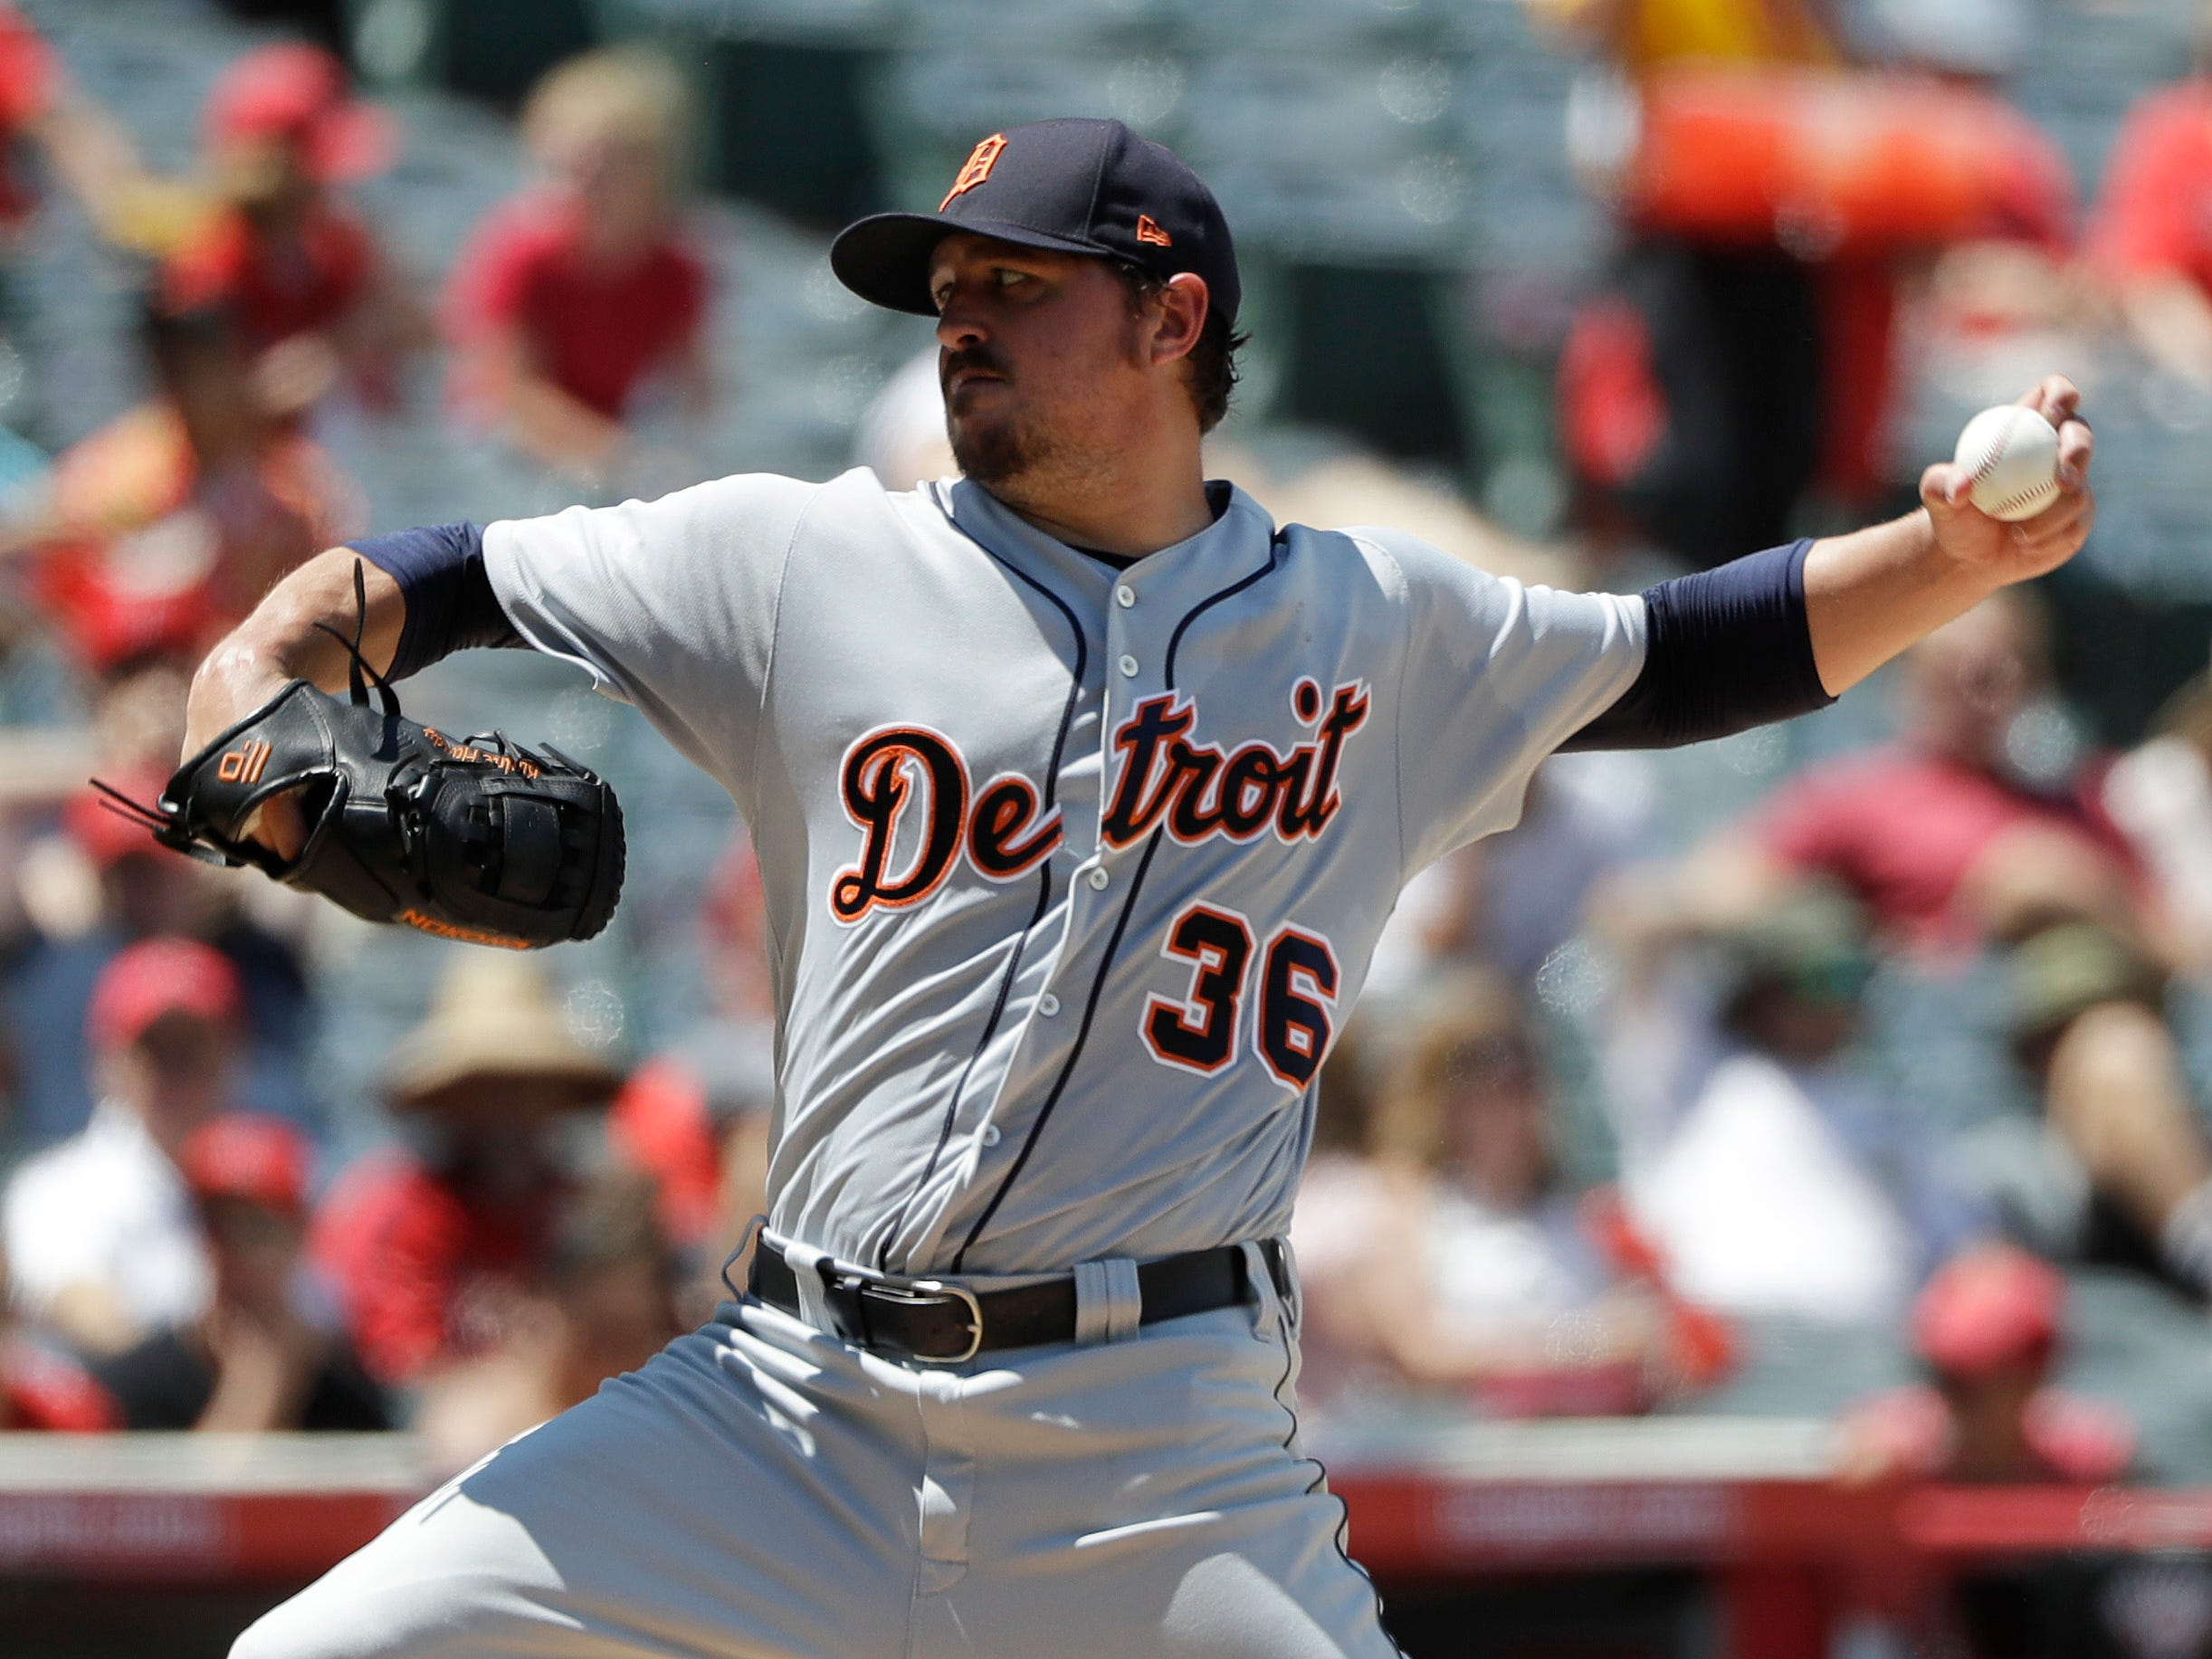 Detroit Tigers pitcher Blaine Hardy throws to the Los Angeles Angels during the second inning of a baseball game Wednesday, Aug. 8, 2018, in Anaheim, Calif.